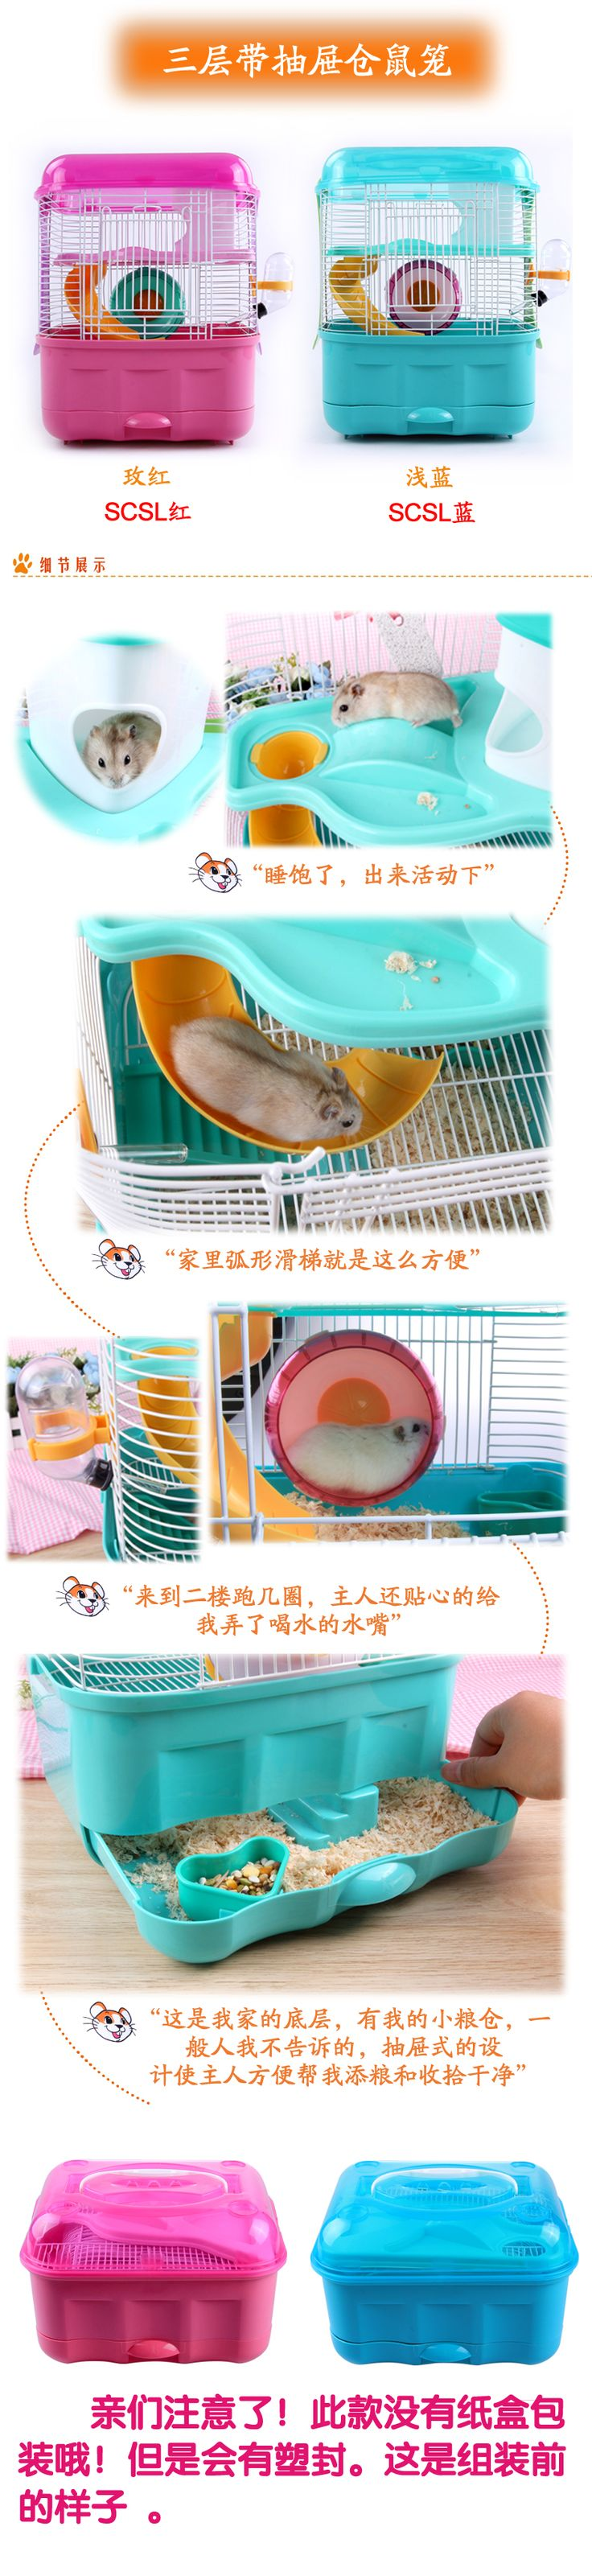 Three layer hamster cage hamster supplies luxury transparent hamster cage hamster-inCarriers from Home & Garden on Aliexpress.com | Alibaba Group